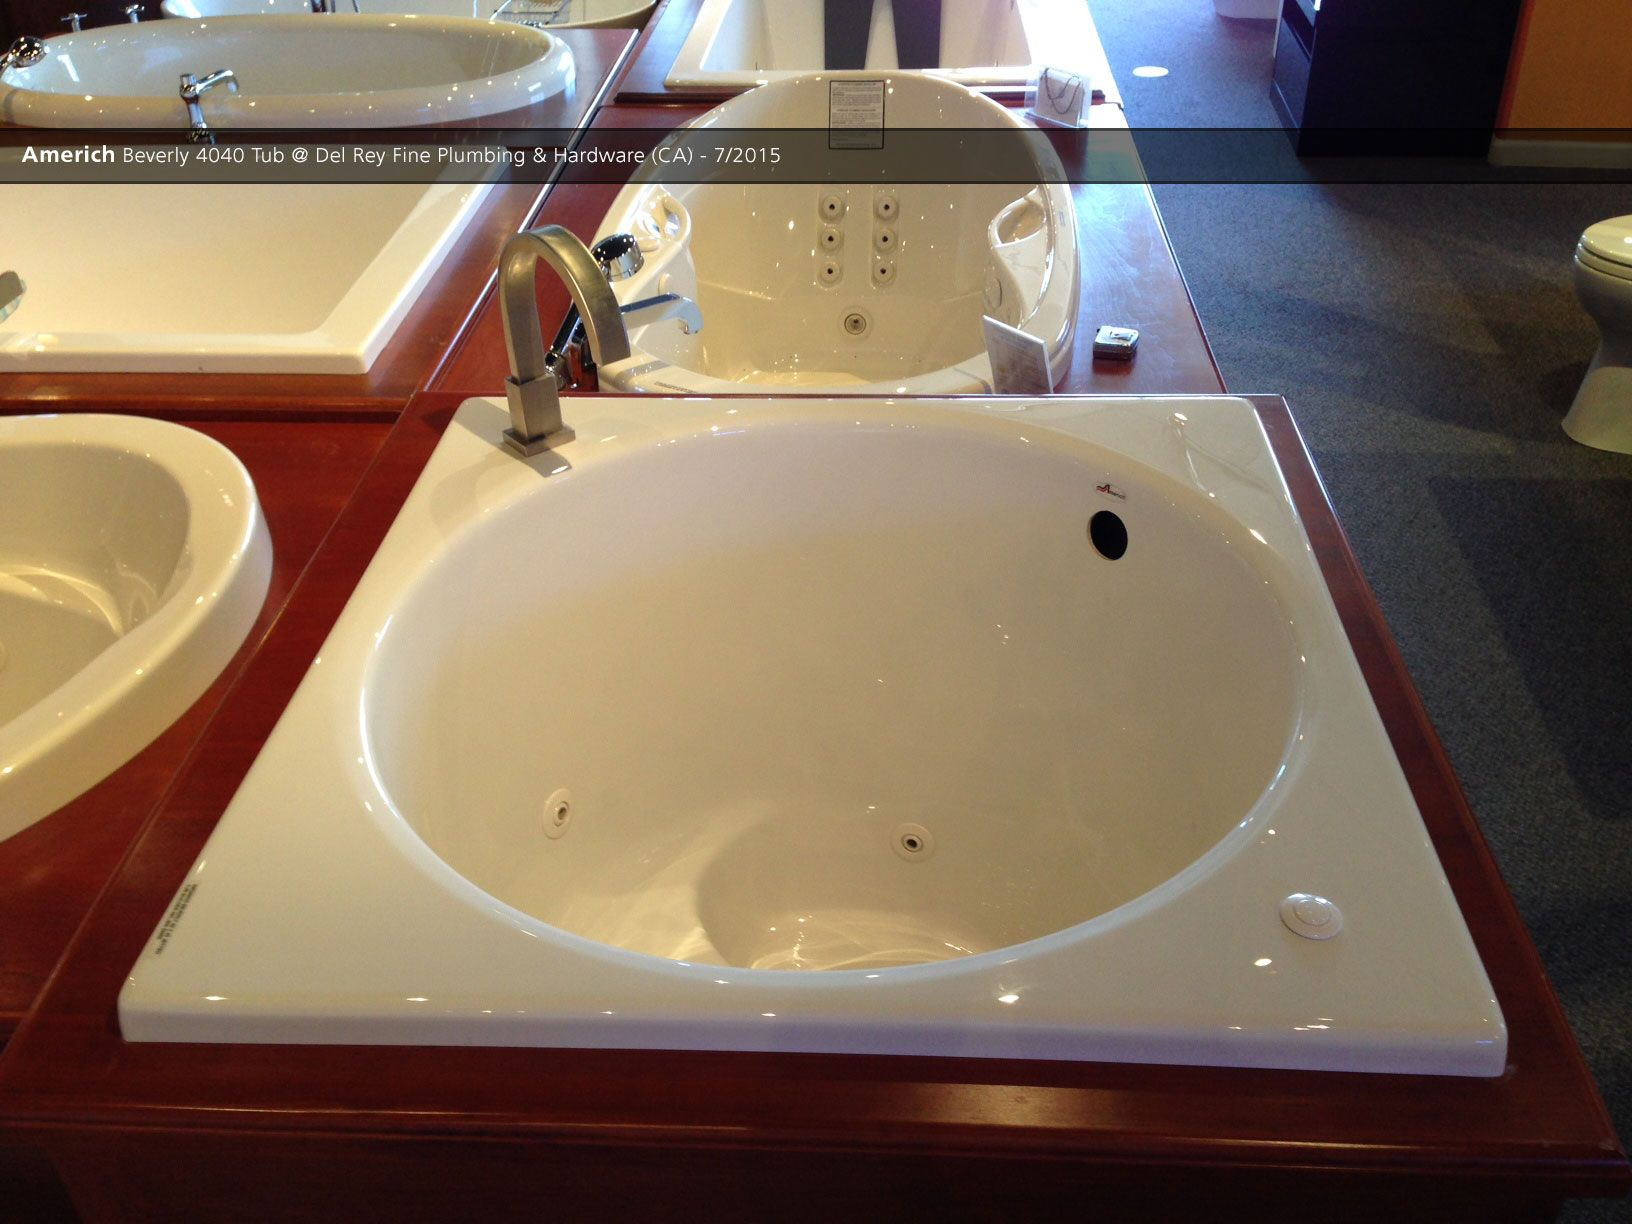 Americh Beverly 4040 Tub @ Del Rey Fine Plumbing & Hardware (CA) - 7 ...